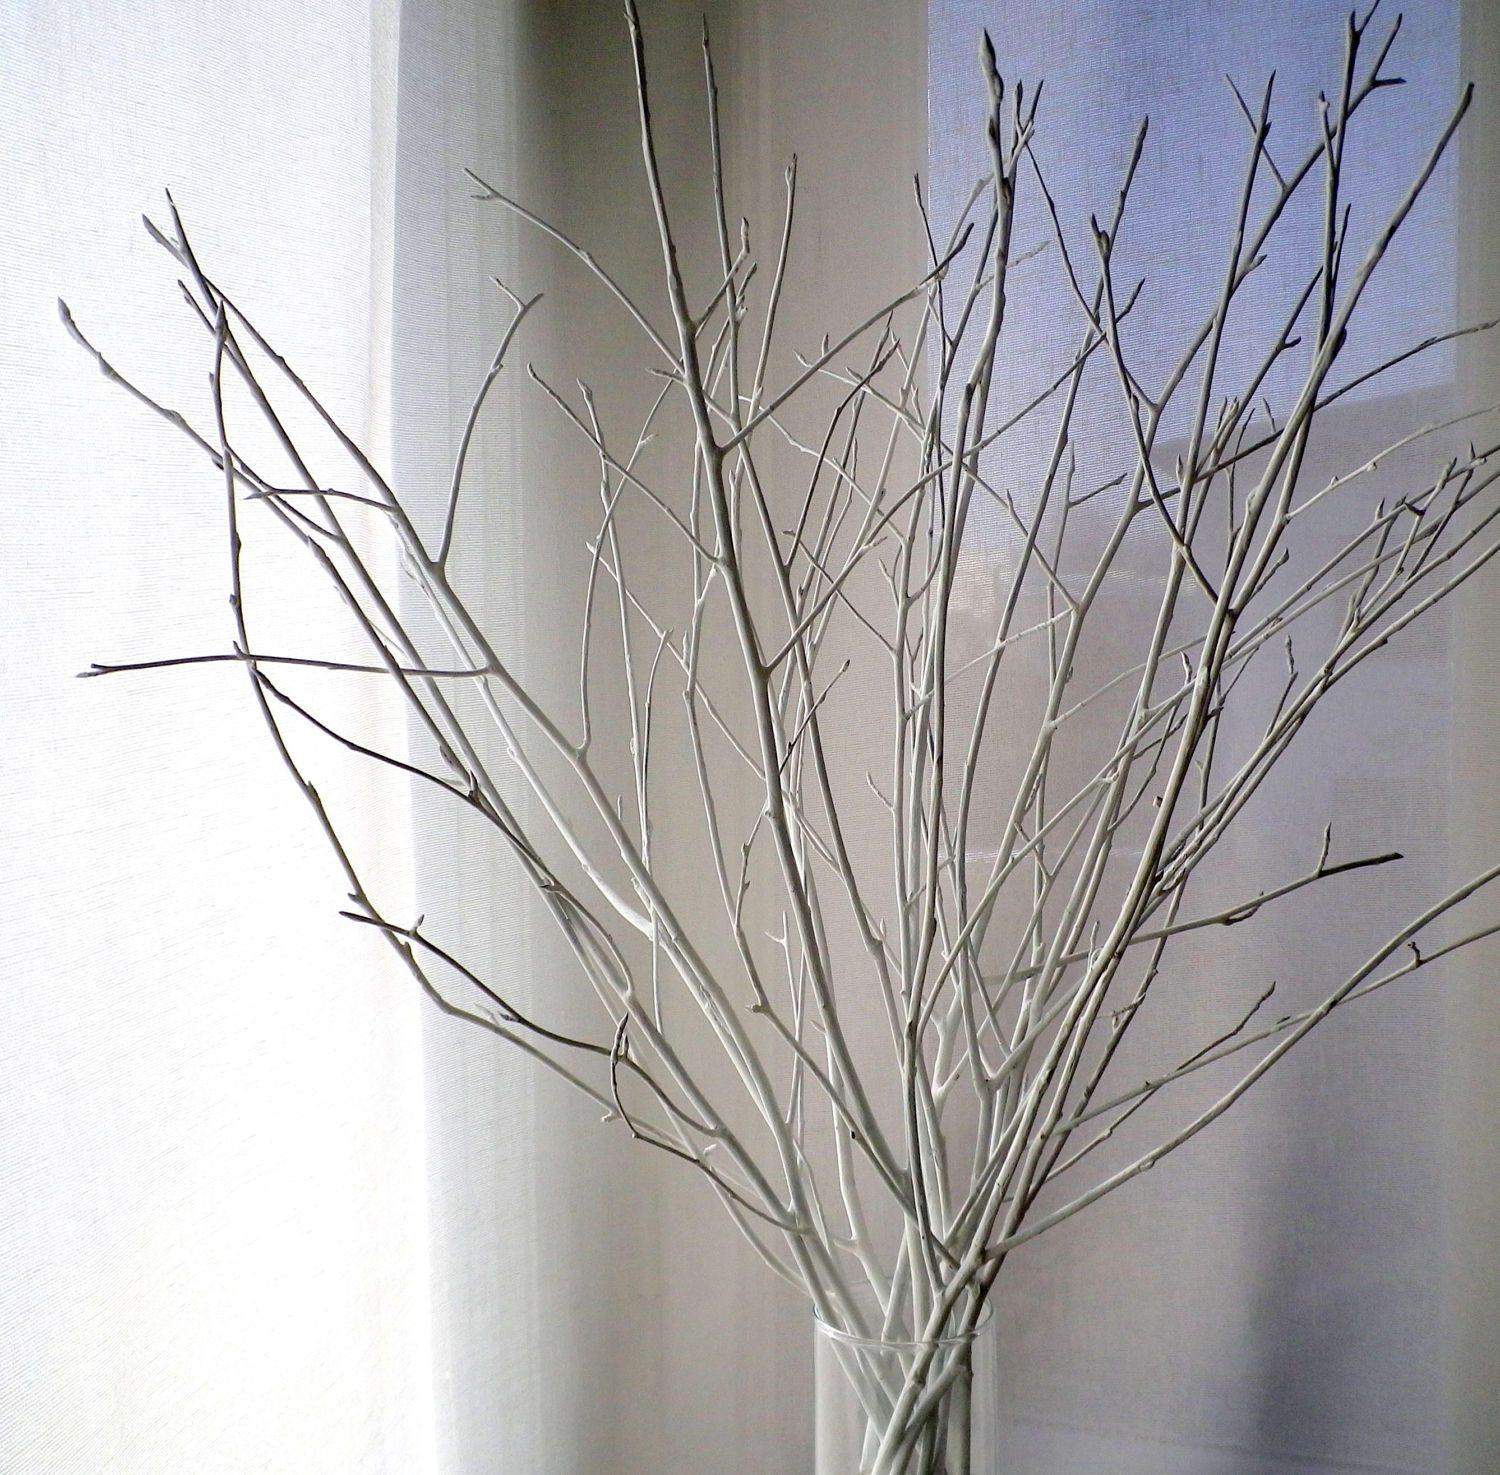 White Birch Twigs Set Of 12 Hand Painted Birch Branches Etsy Minimalist Home Decor Water Based Acrylic Paint Vase Fillers